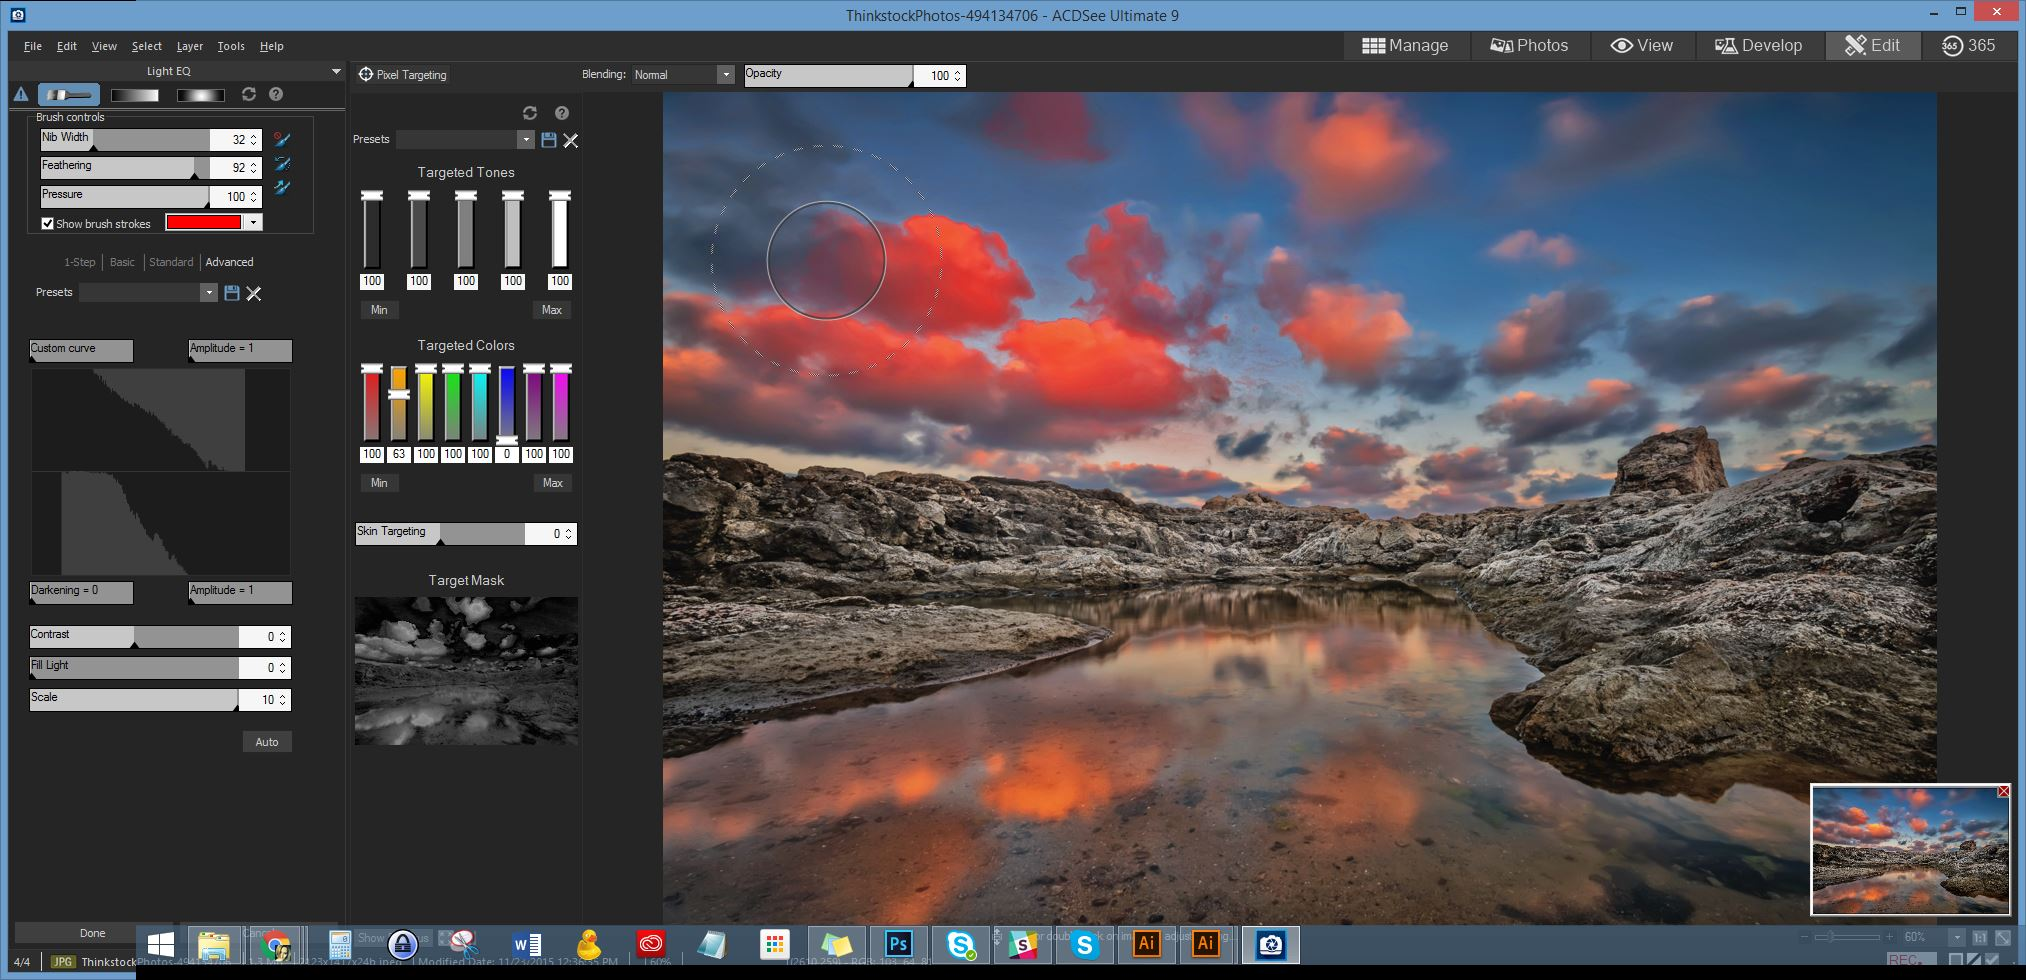 Acdsee photo manager 2017 11.0 build 113